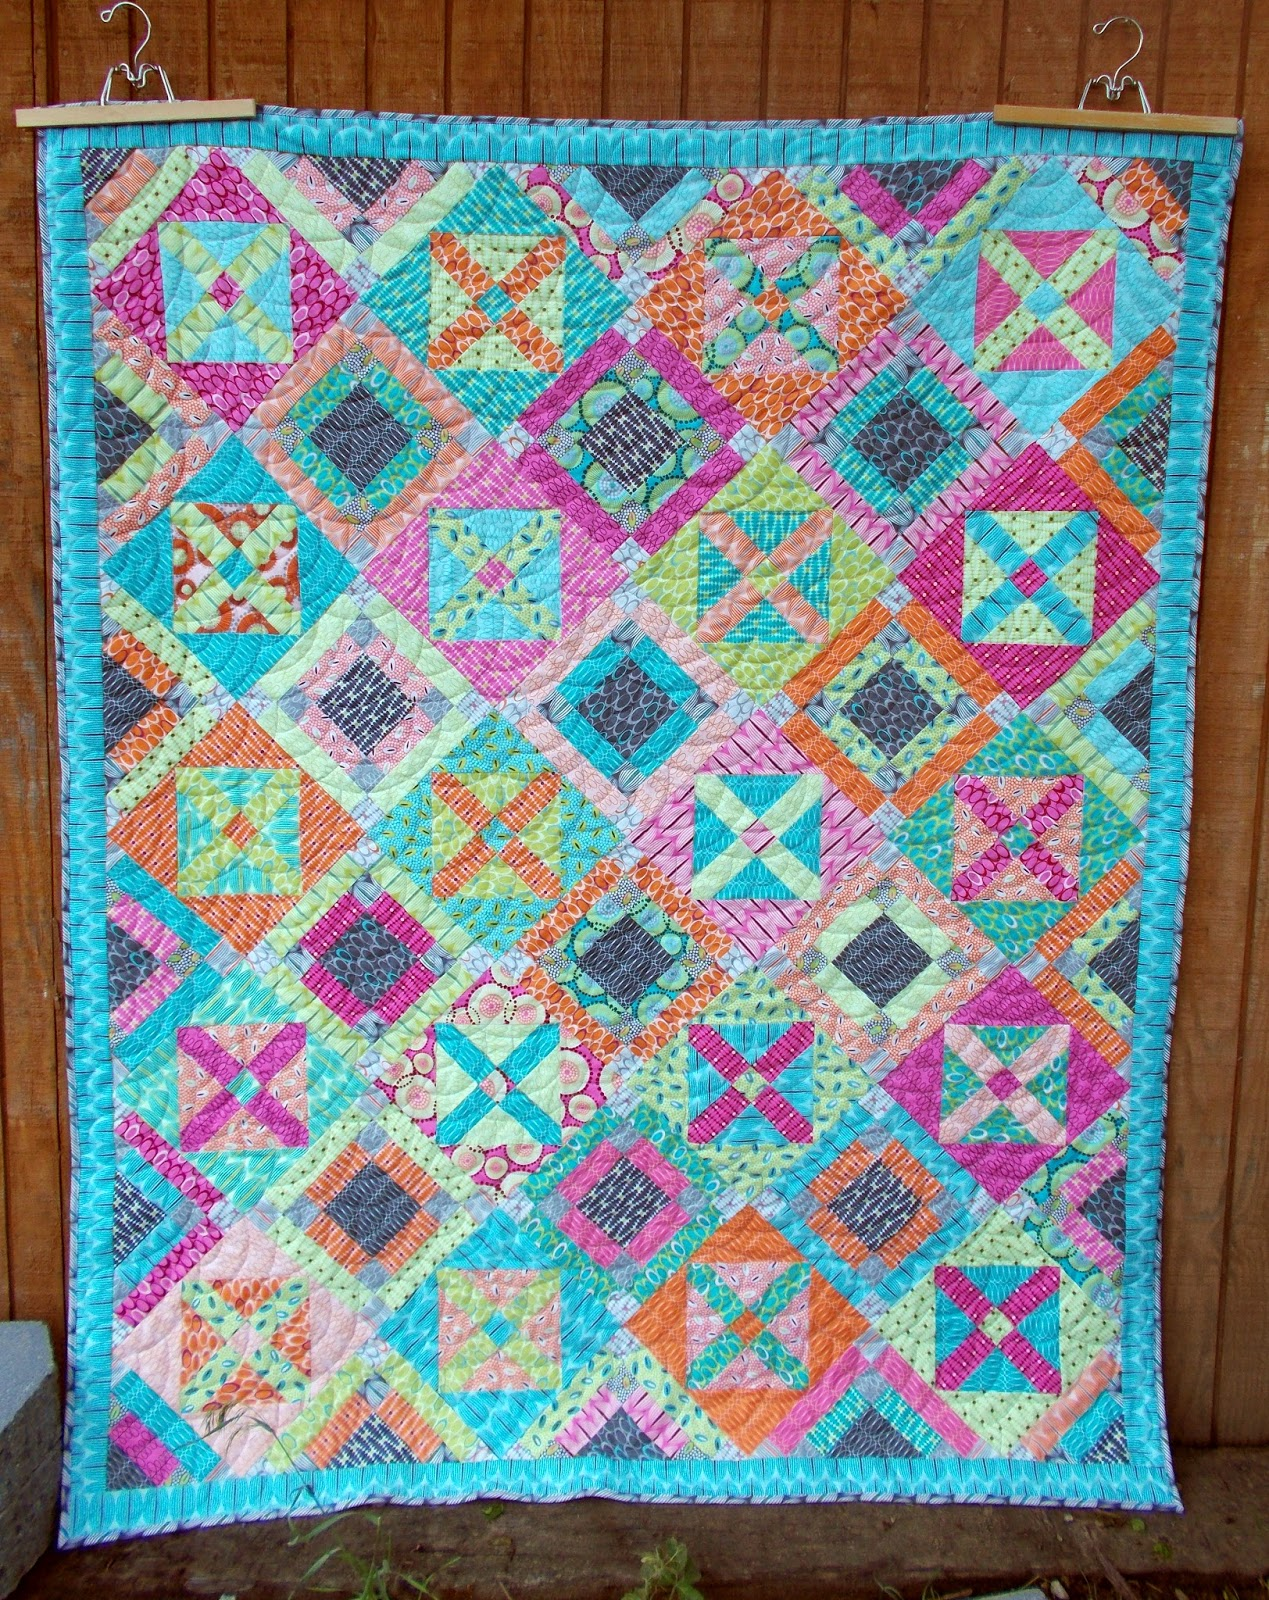 Baptist Fan Quilting : baptist, quilting, Quilting, Baptist, Quilts